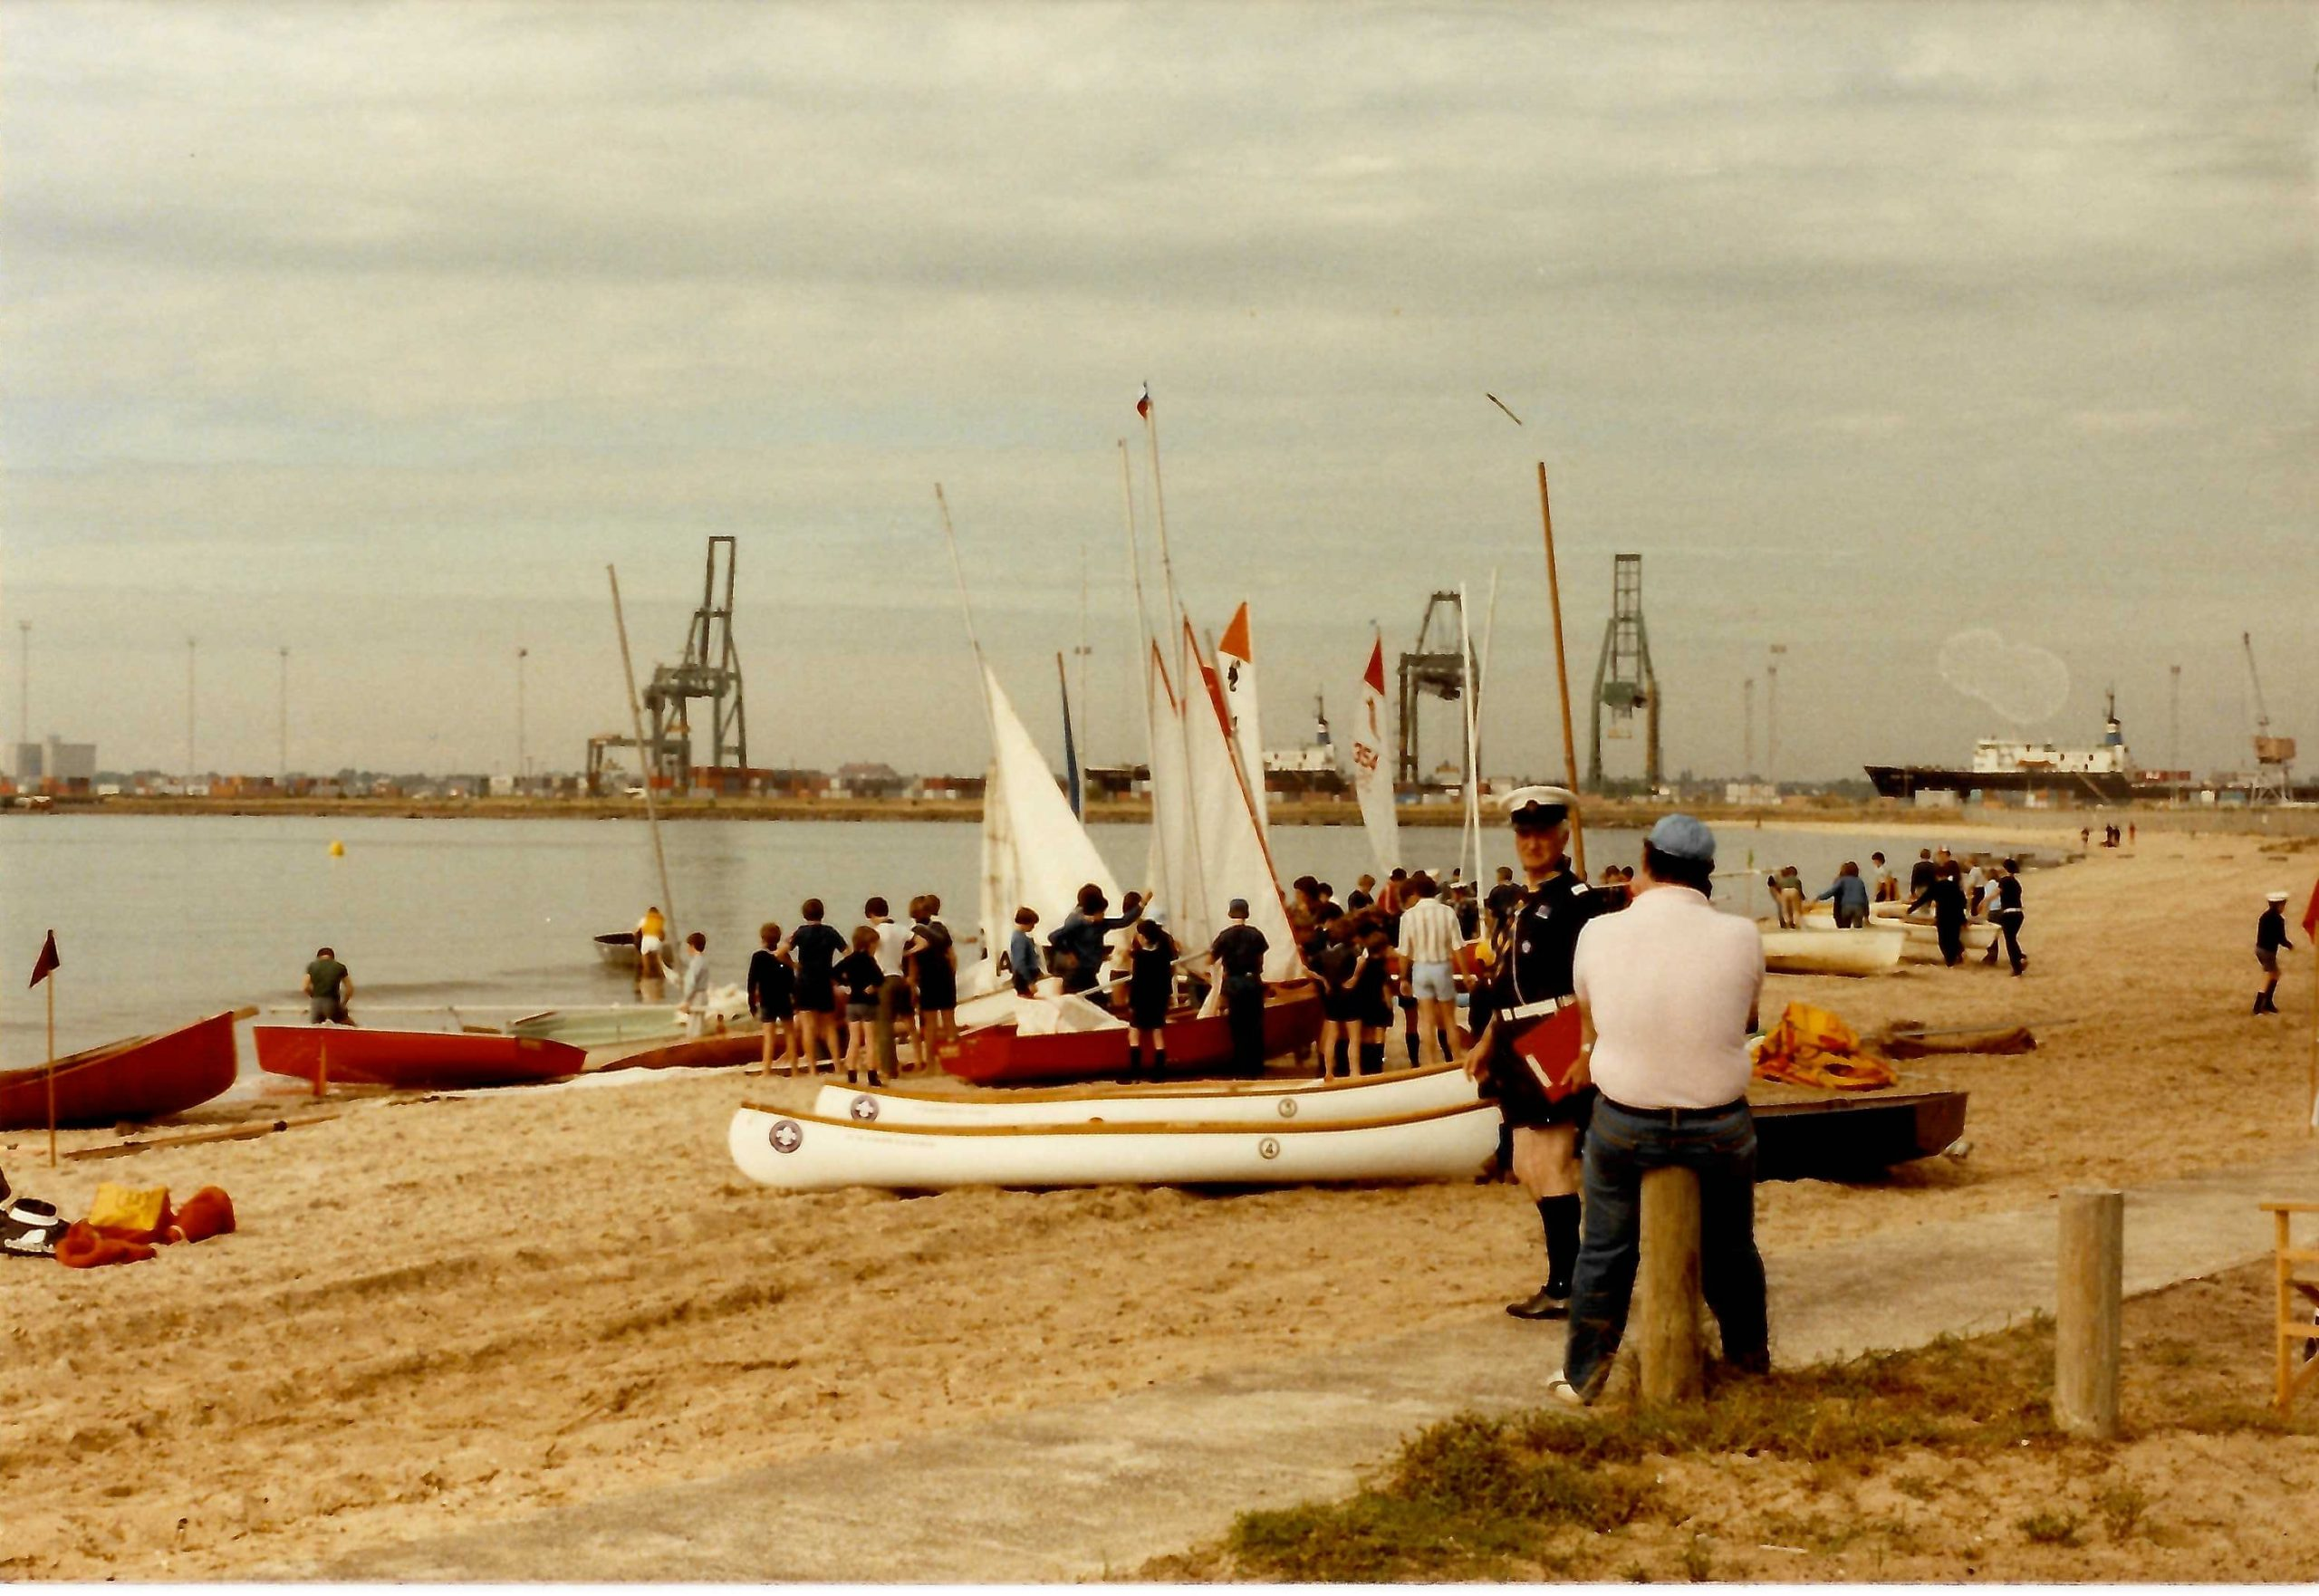 With the 1st Ivanhoe Sea Scouts Annual Port Melbourne Regatta, Sandridge Beach, Port Melbourne.  Sunday 27 November, 1983.  His expert knowledge of water activities was never blatantly displayed, he guided both youth and adults in water skills with his long experience and understanding of sailing techniques, recalled Peter Datson, Collection Manager, Scout Heritage Victoria